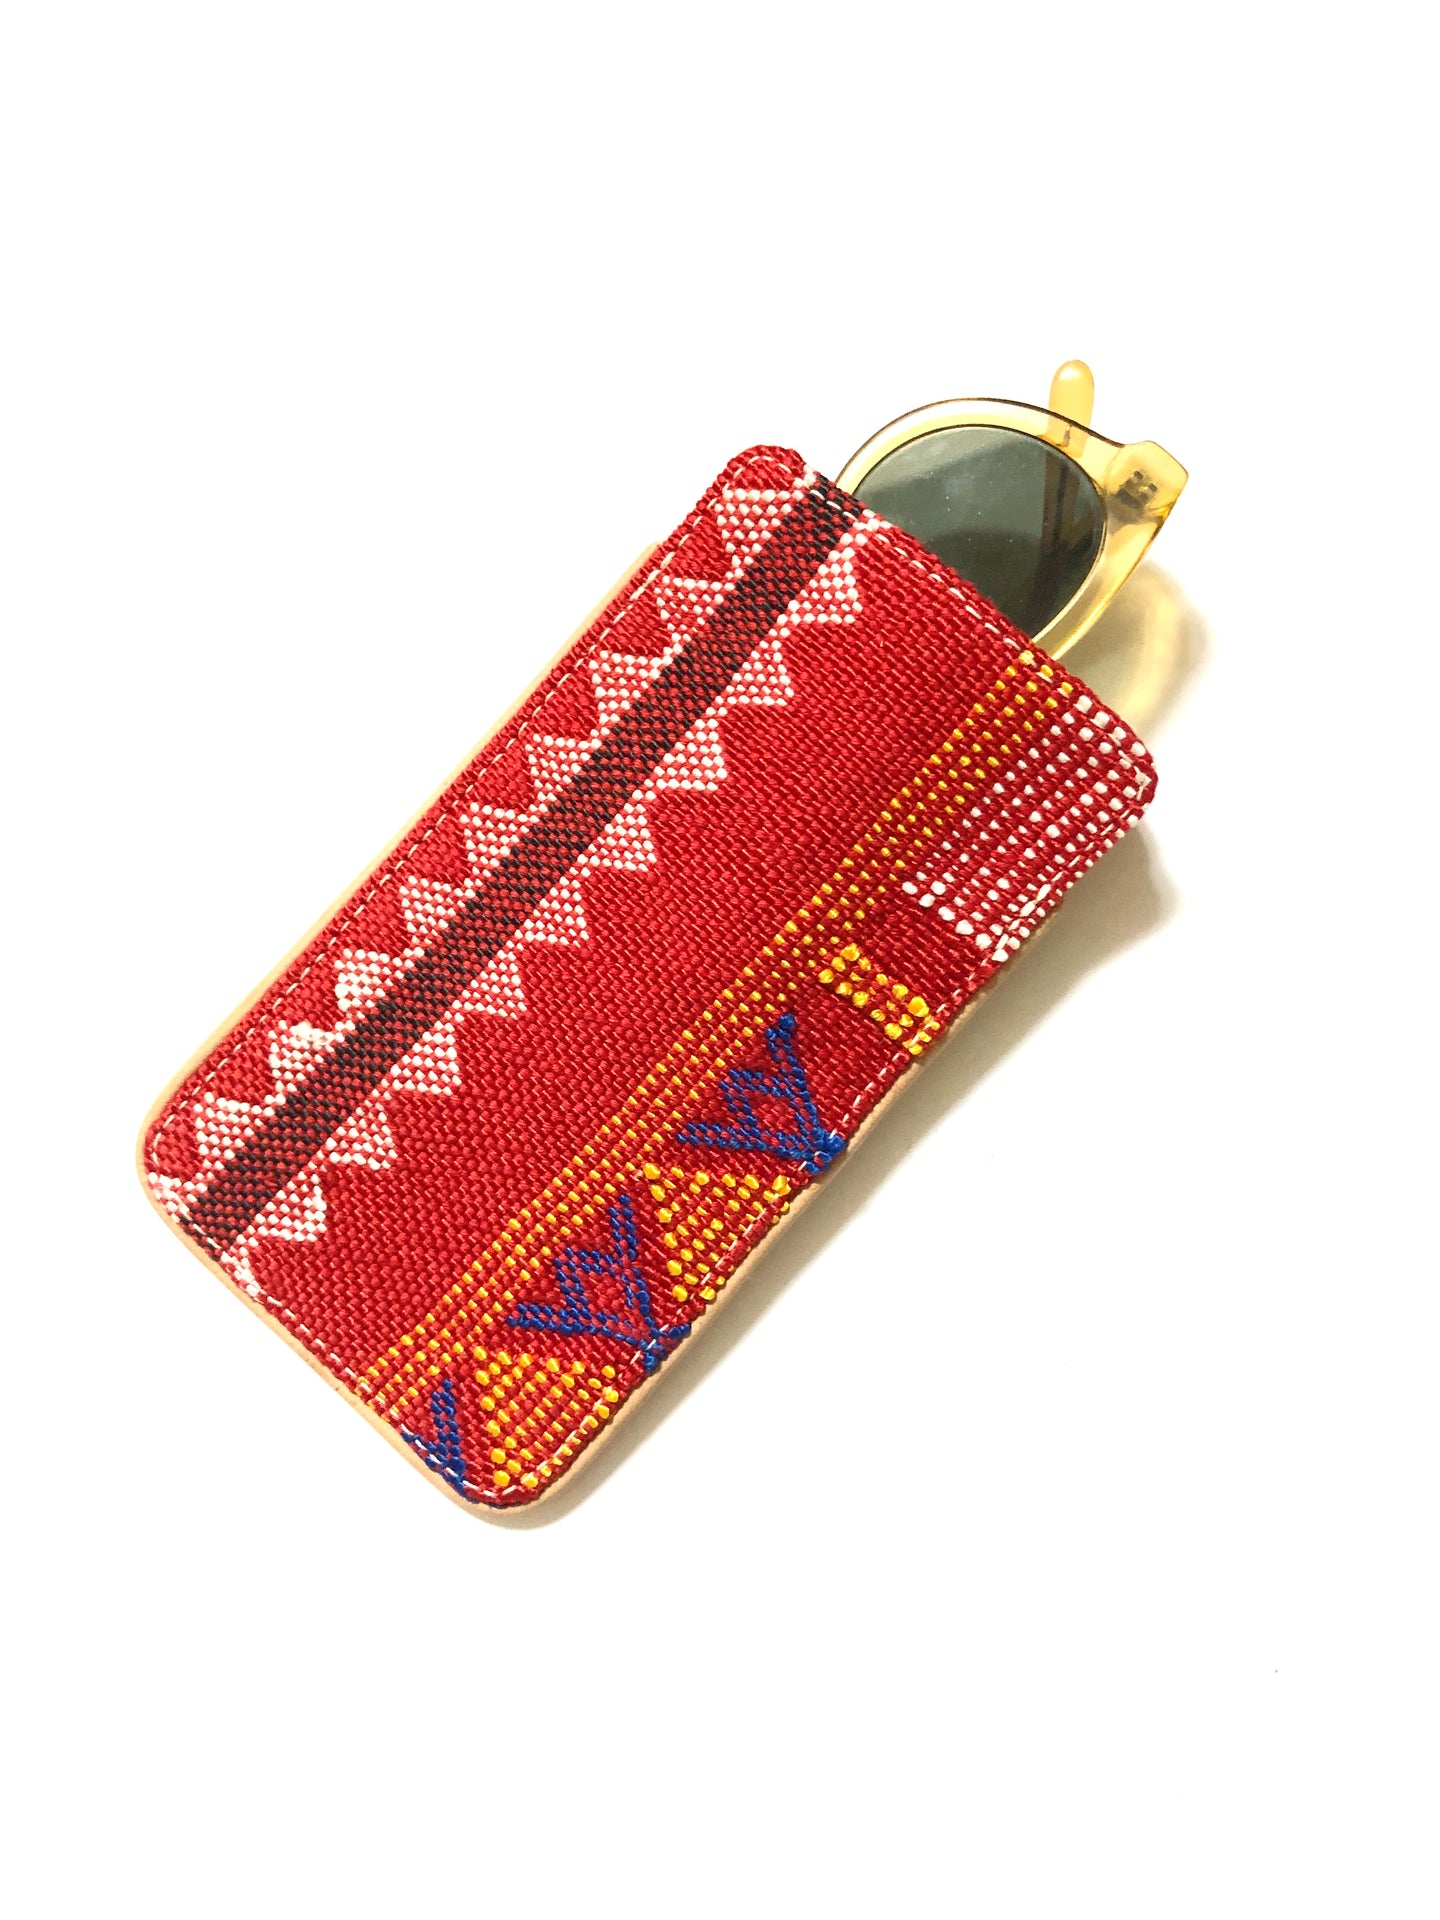 #012 Red Sabra Silk Eyeglass Case